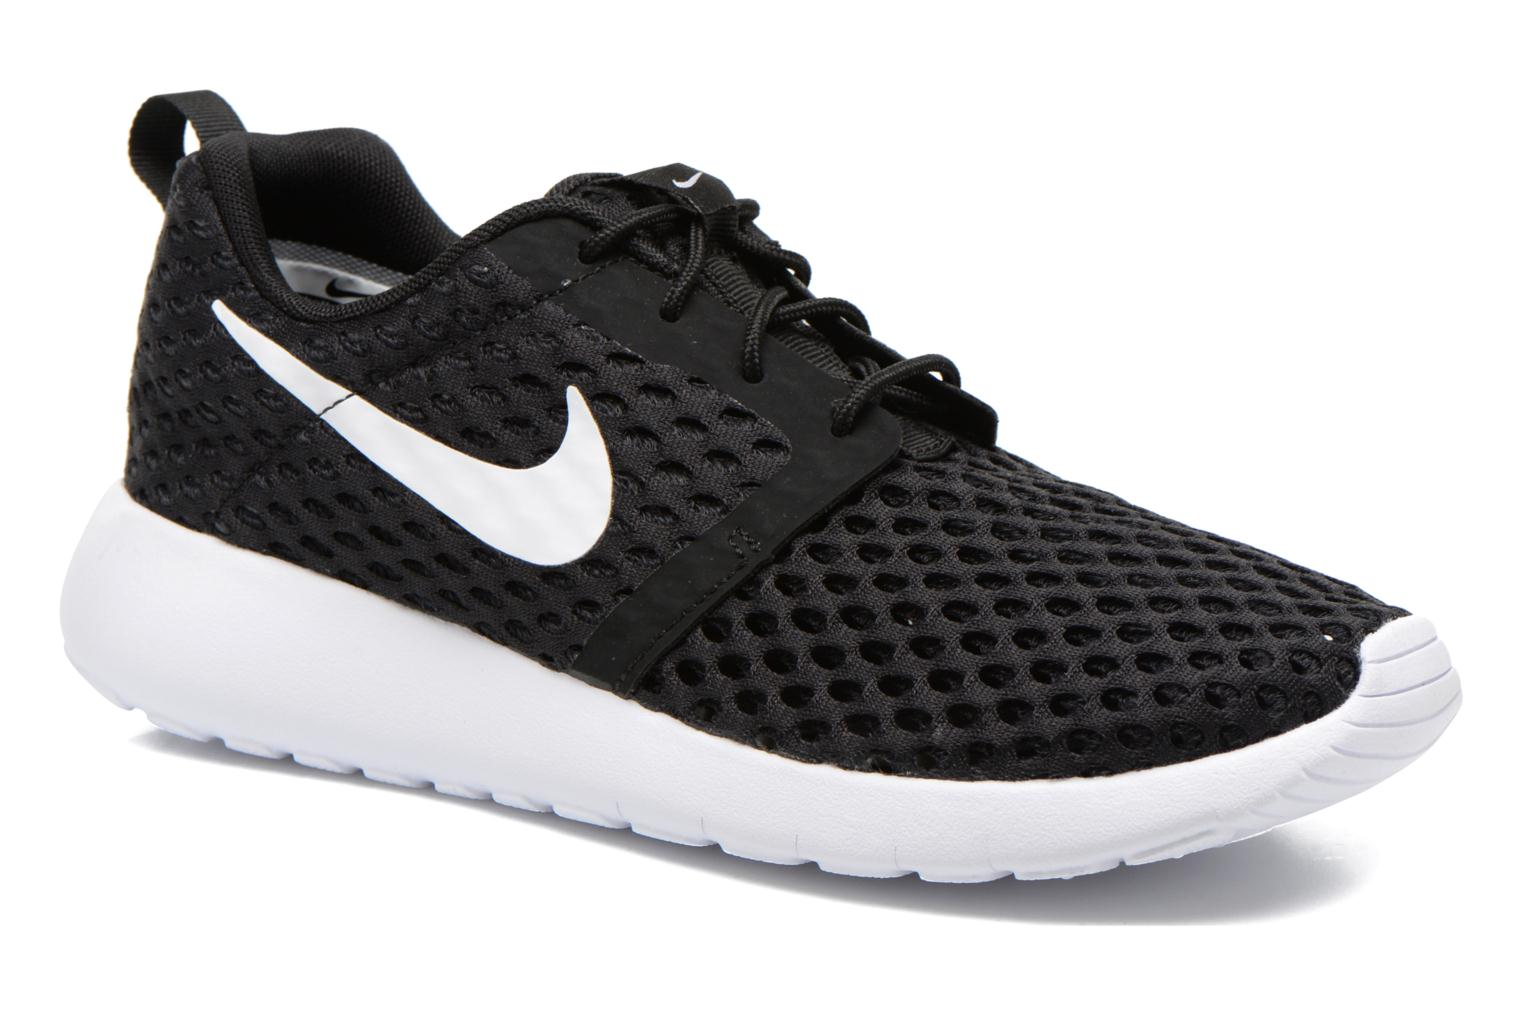 Sneakers ROSHE ONE FLIGHT WEIGHT (GS) by Nike